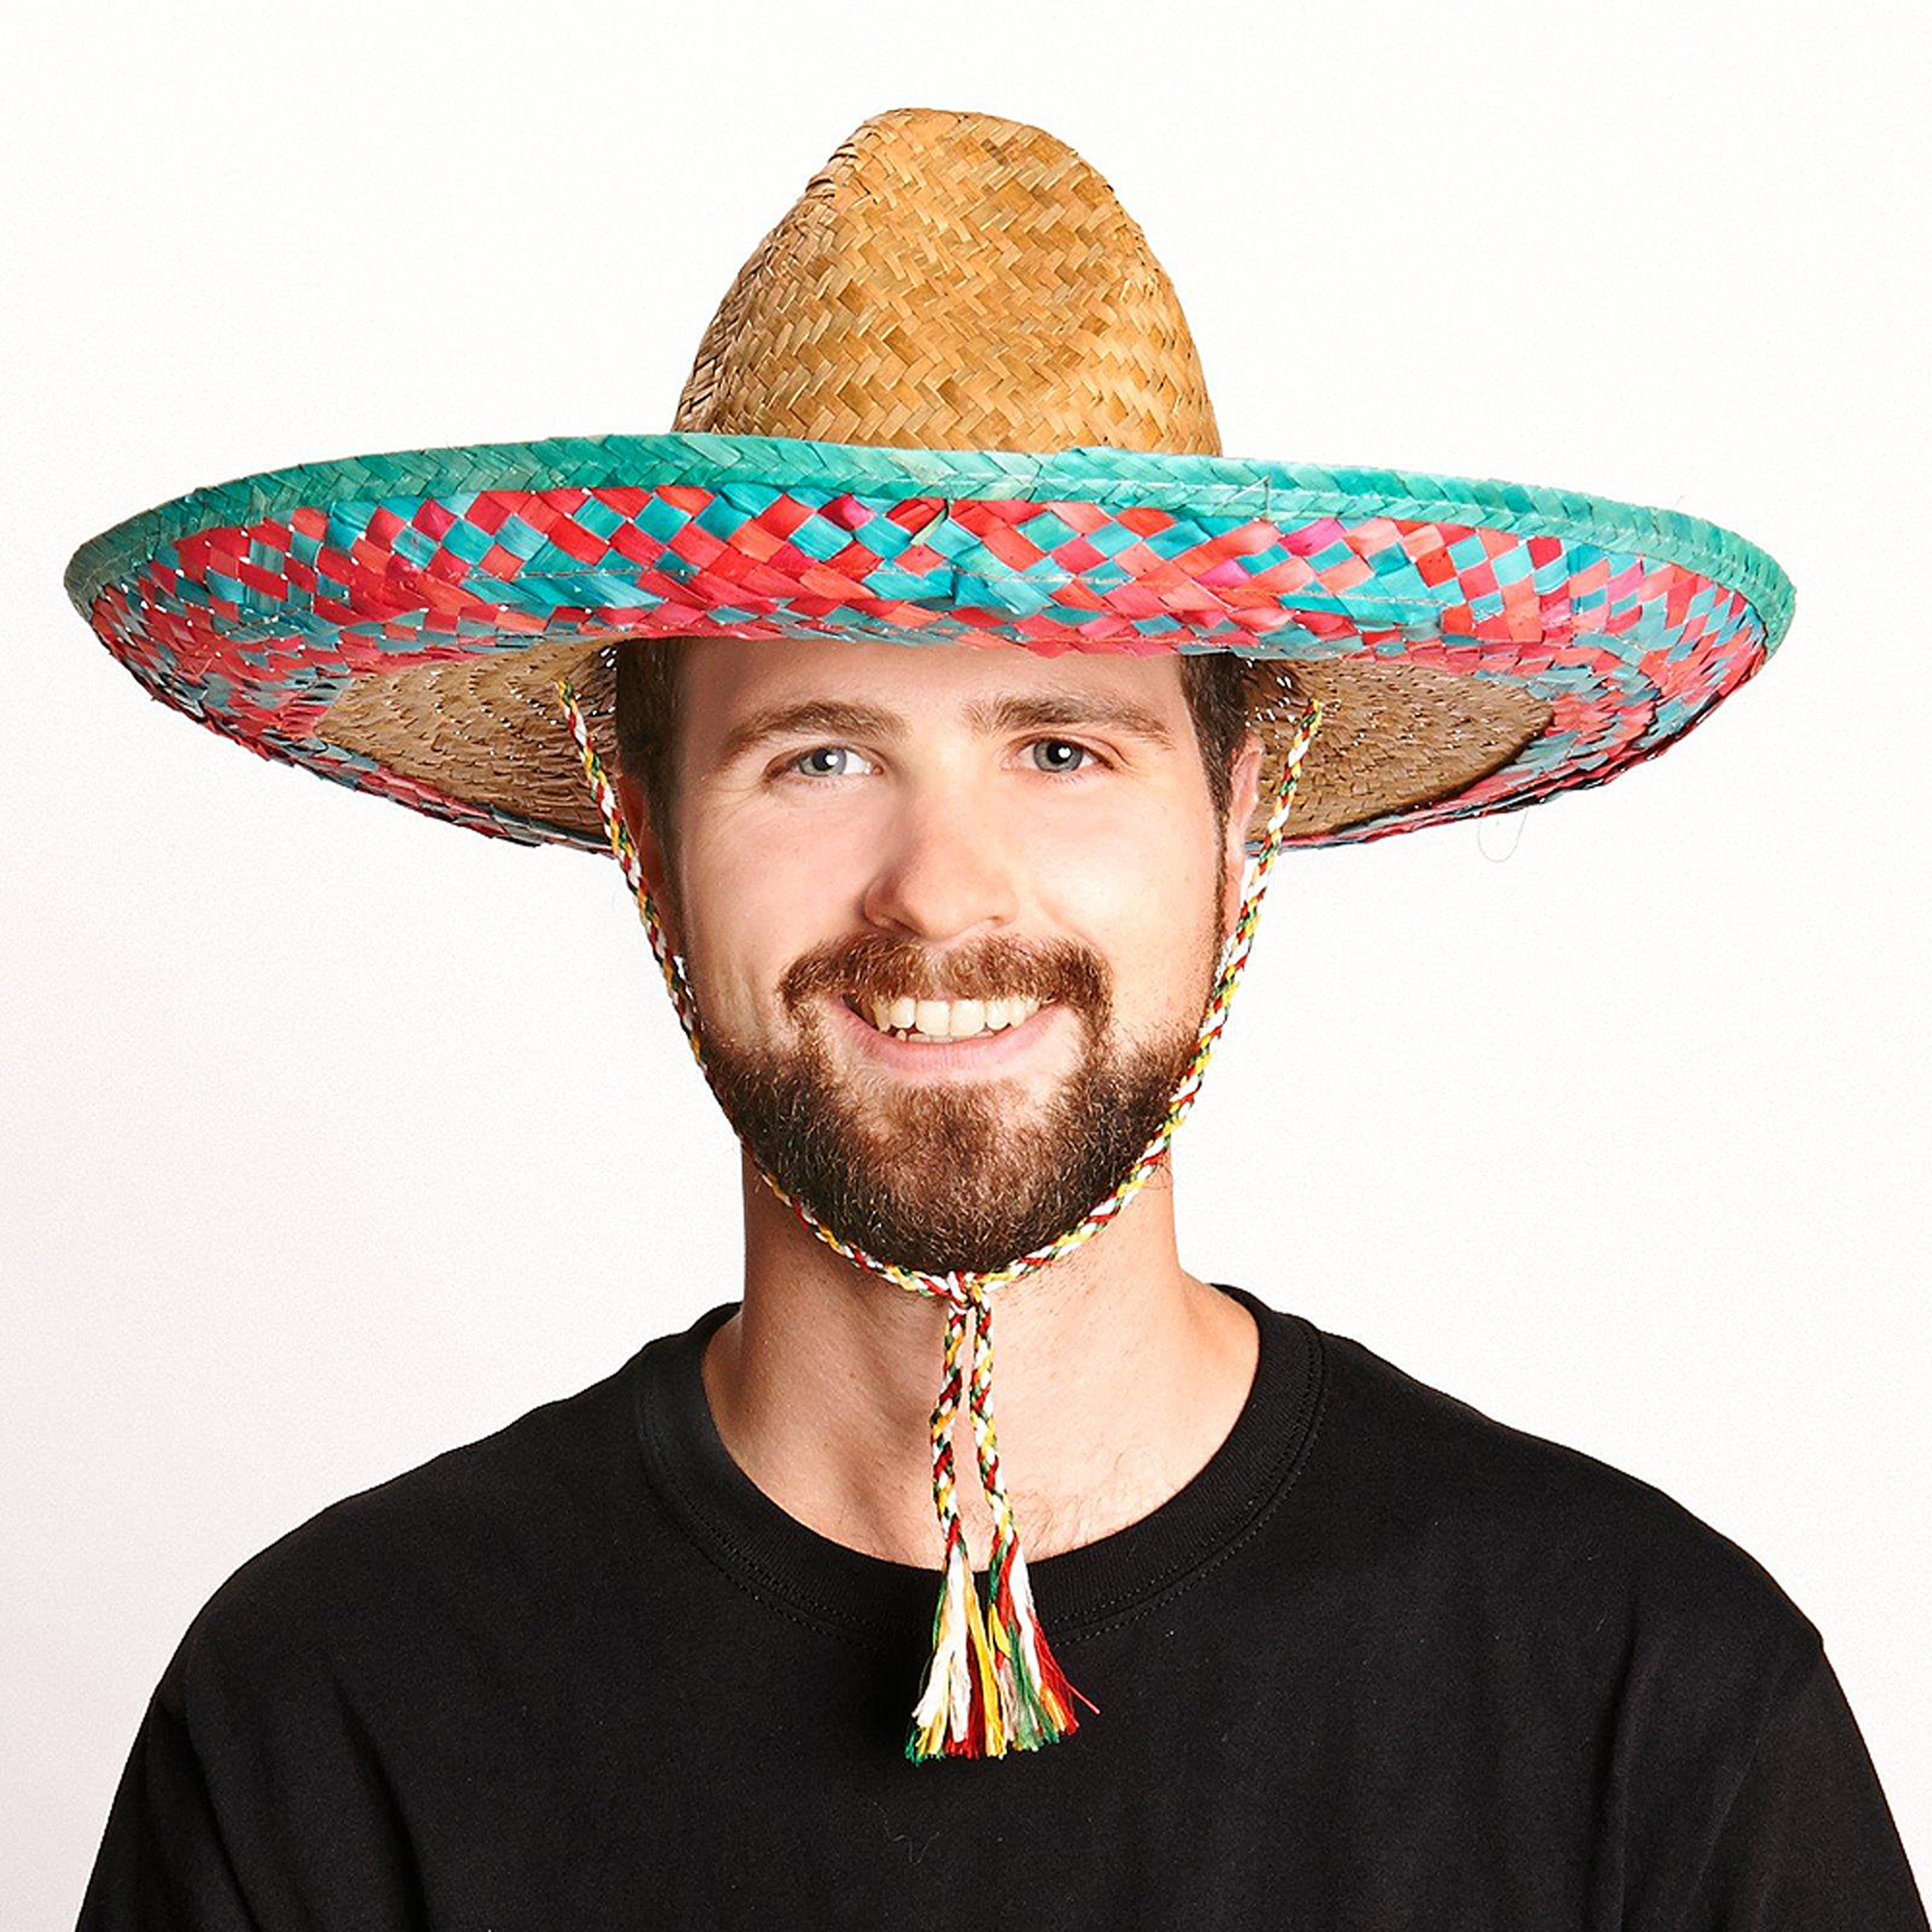 Adult Sombrero Adult Halloween Accessory